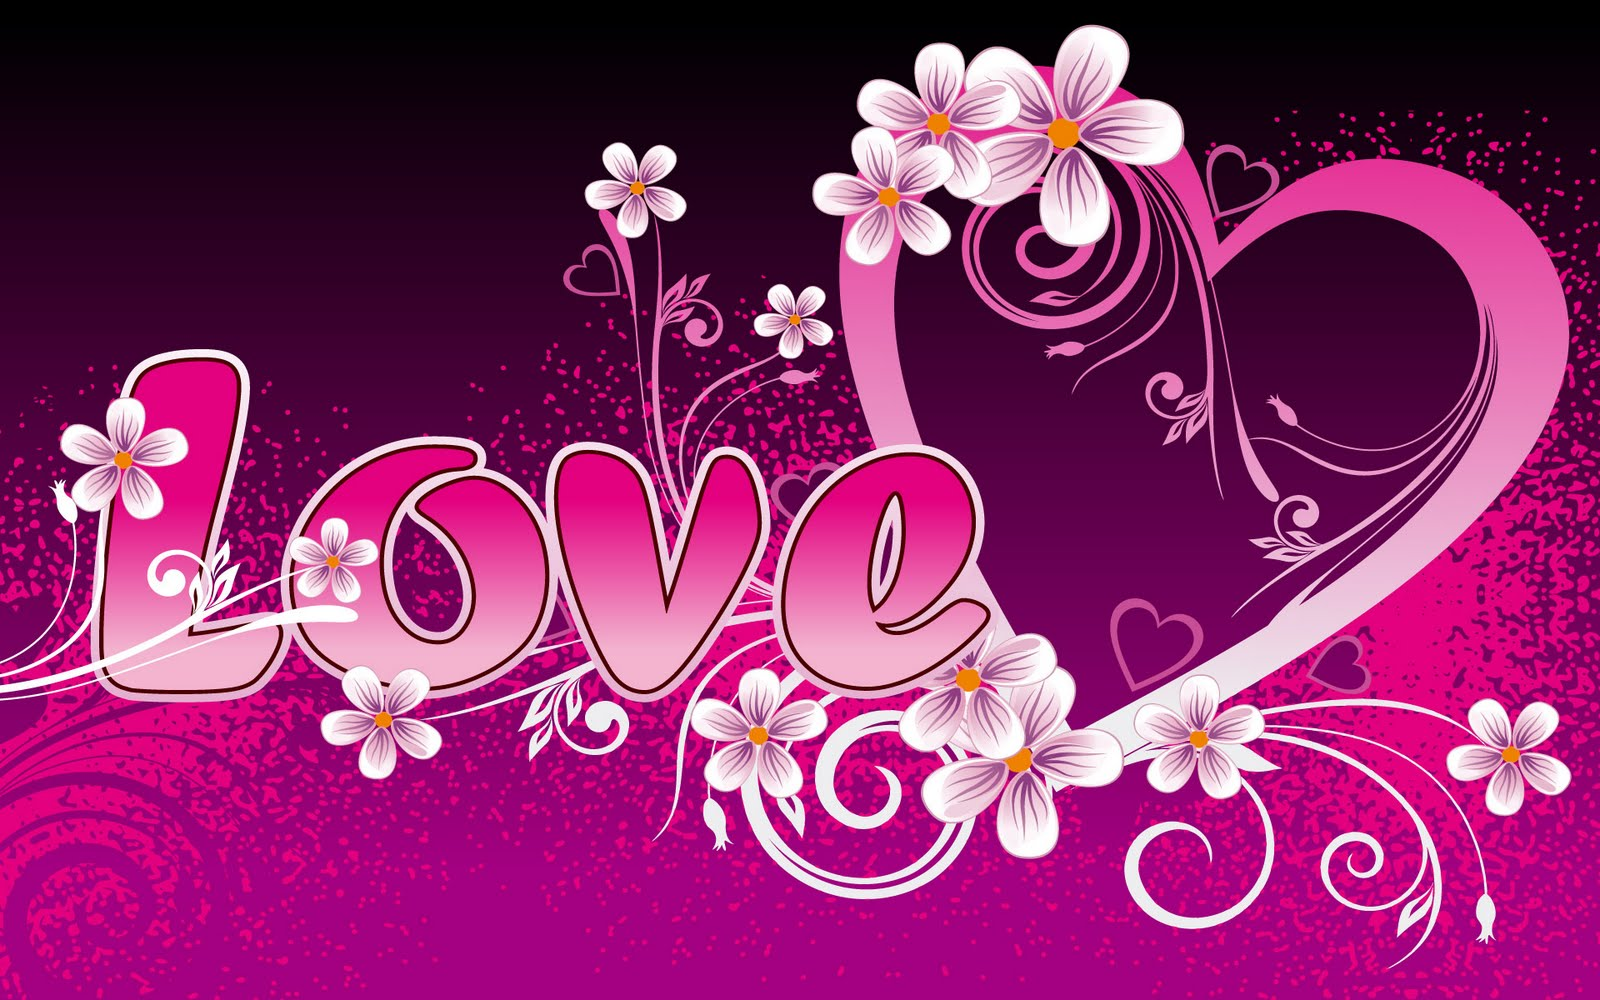 ilona wallpapers Valentines Day Wallpapers HD 1600x1000